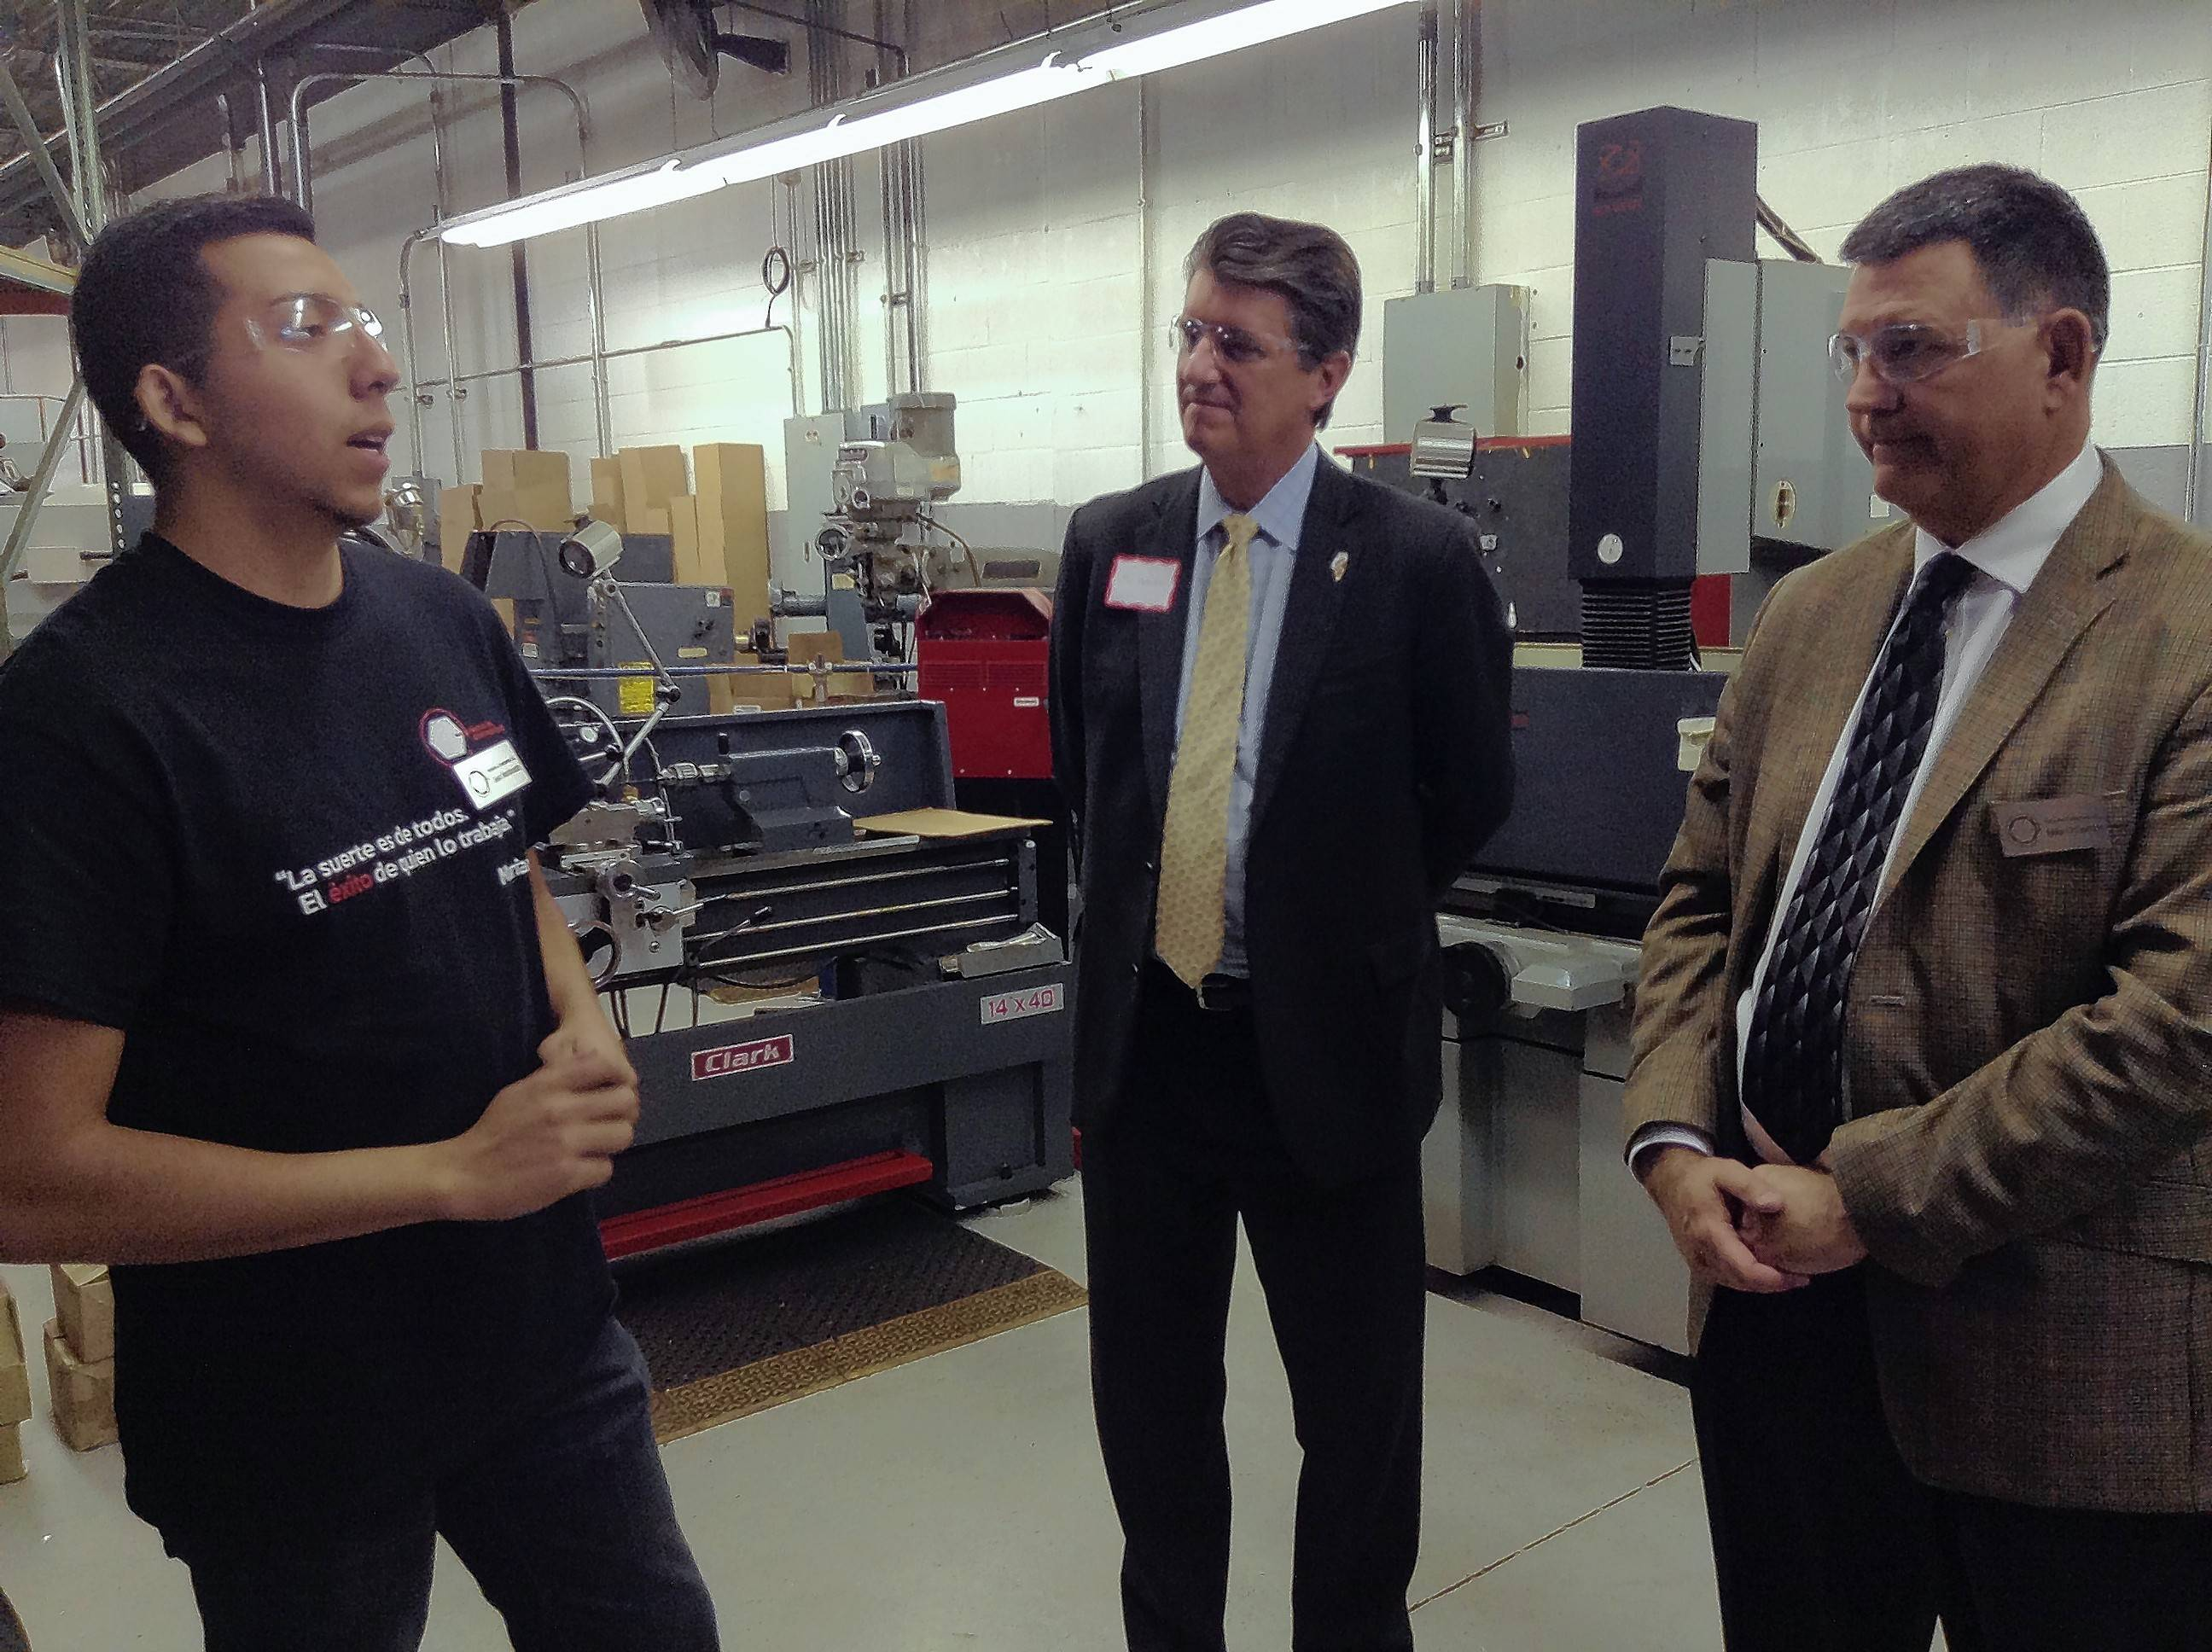 Juan Maldonado, left, an intern at Innovative Components Inc. in Schaumburg and a student at Harper College in Palatine, explains how his education and on-the-job training mesh to Illinois Department of Commerce Director Jim Schultz, center, and Innovative Components President Mike O'Connor, right.